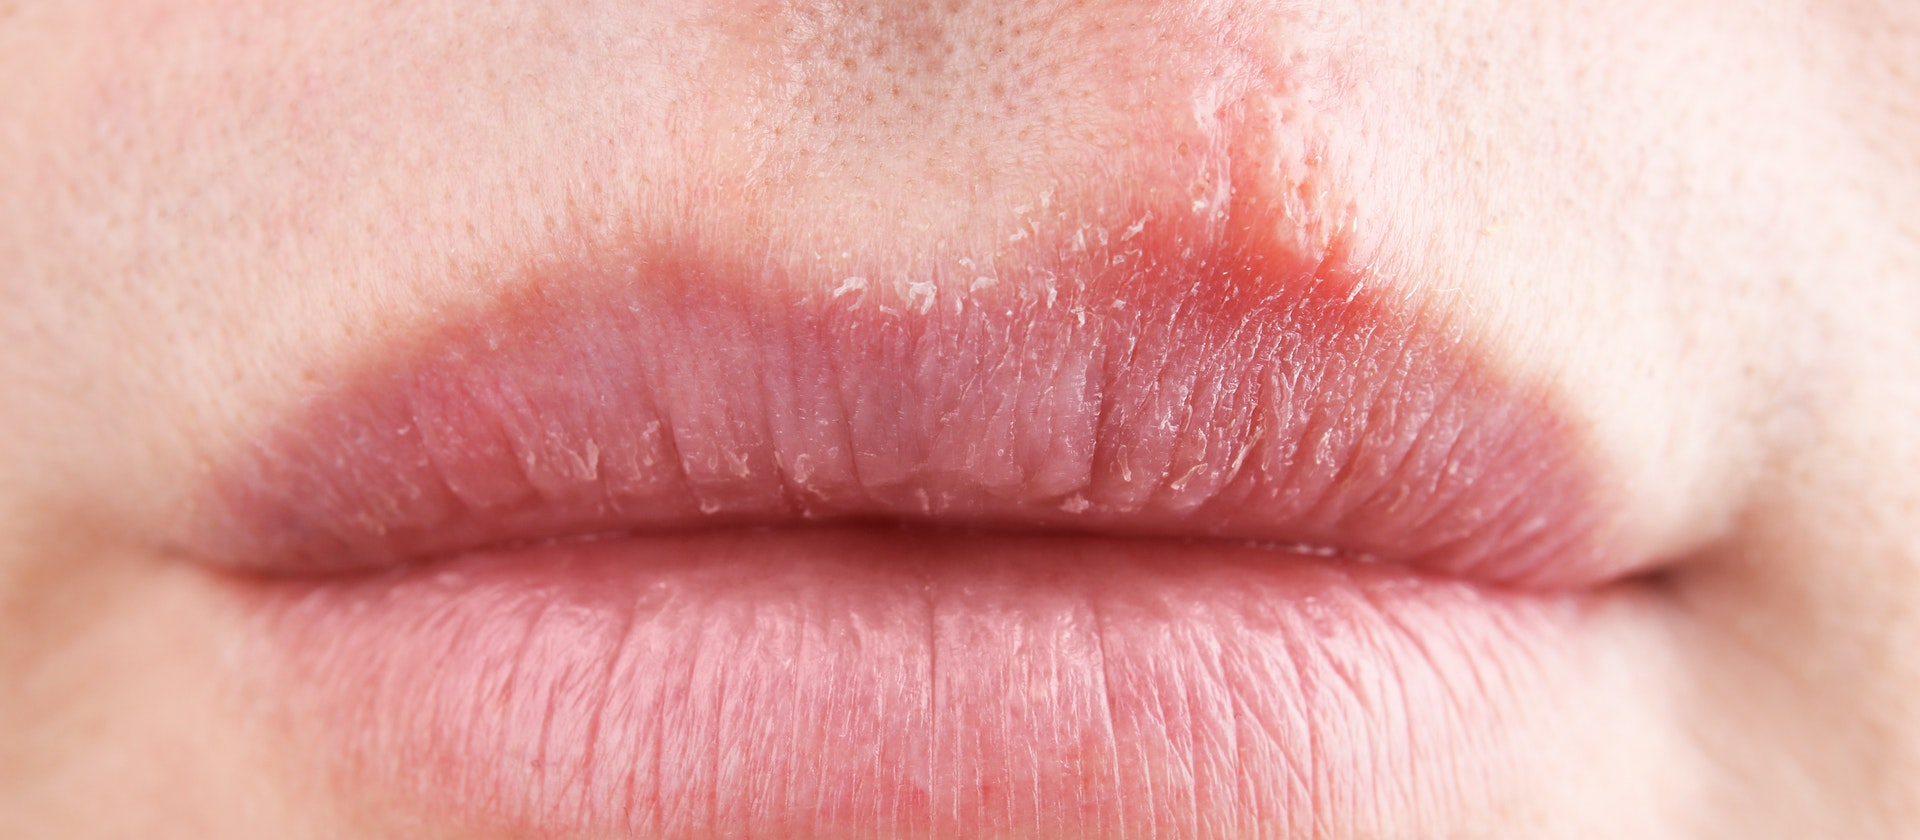 Lip Rash Symptoms Causes Treatment Options Buoy